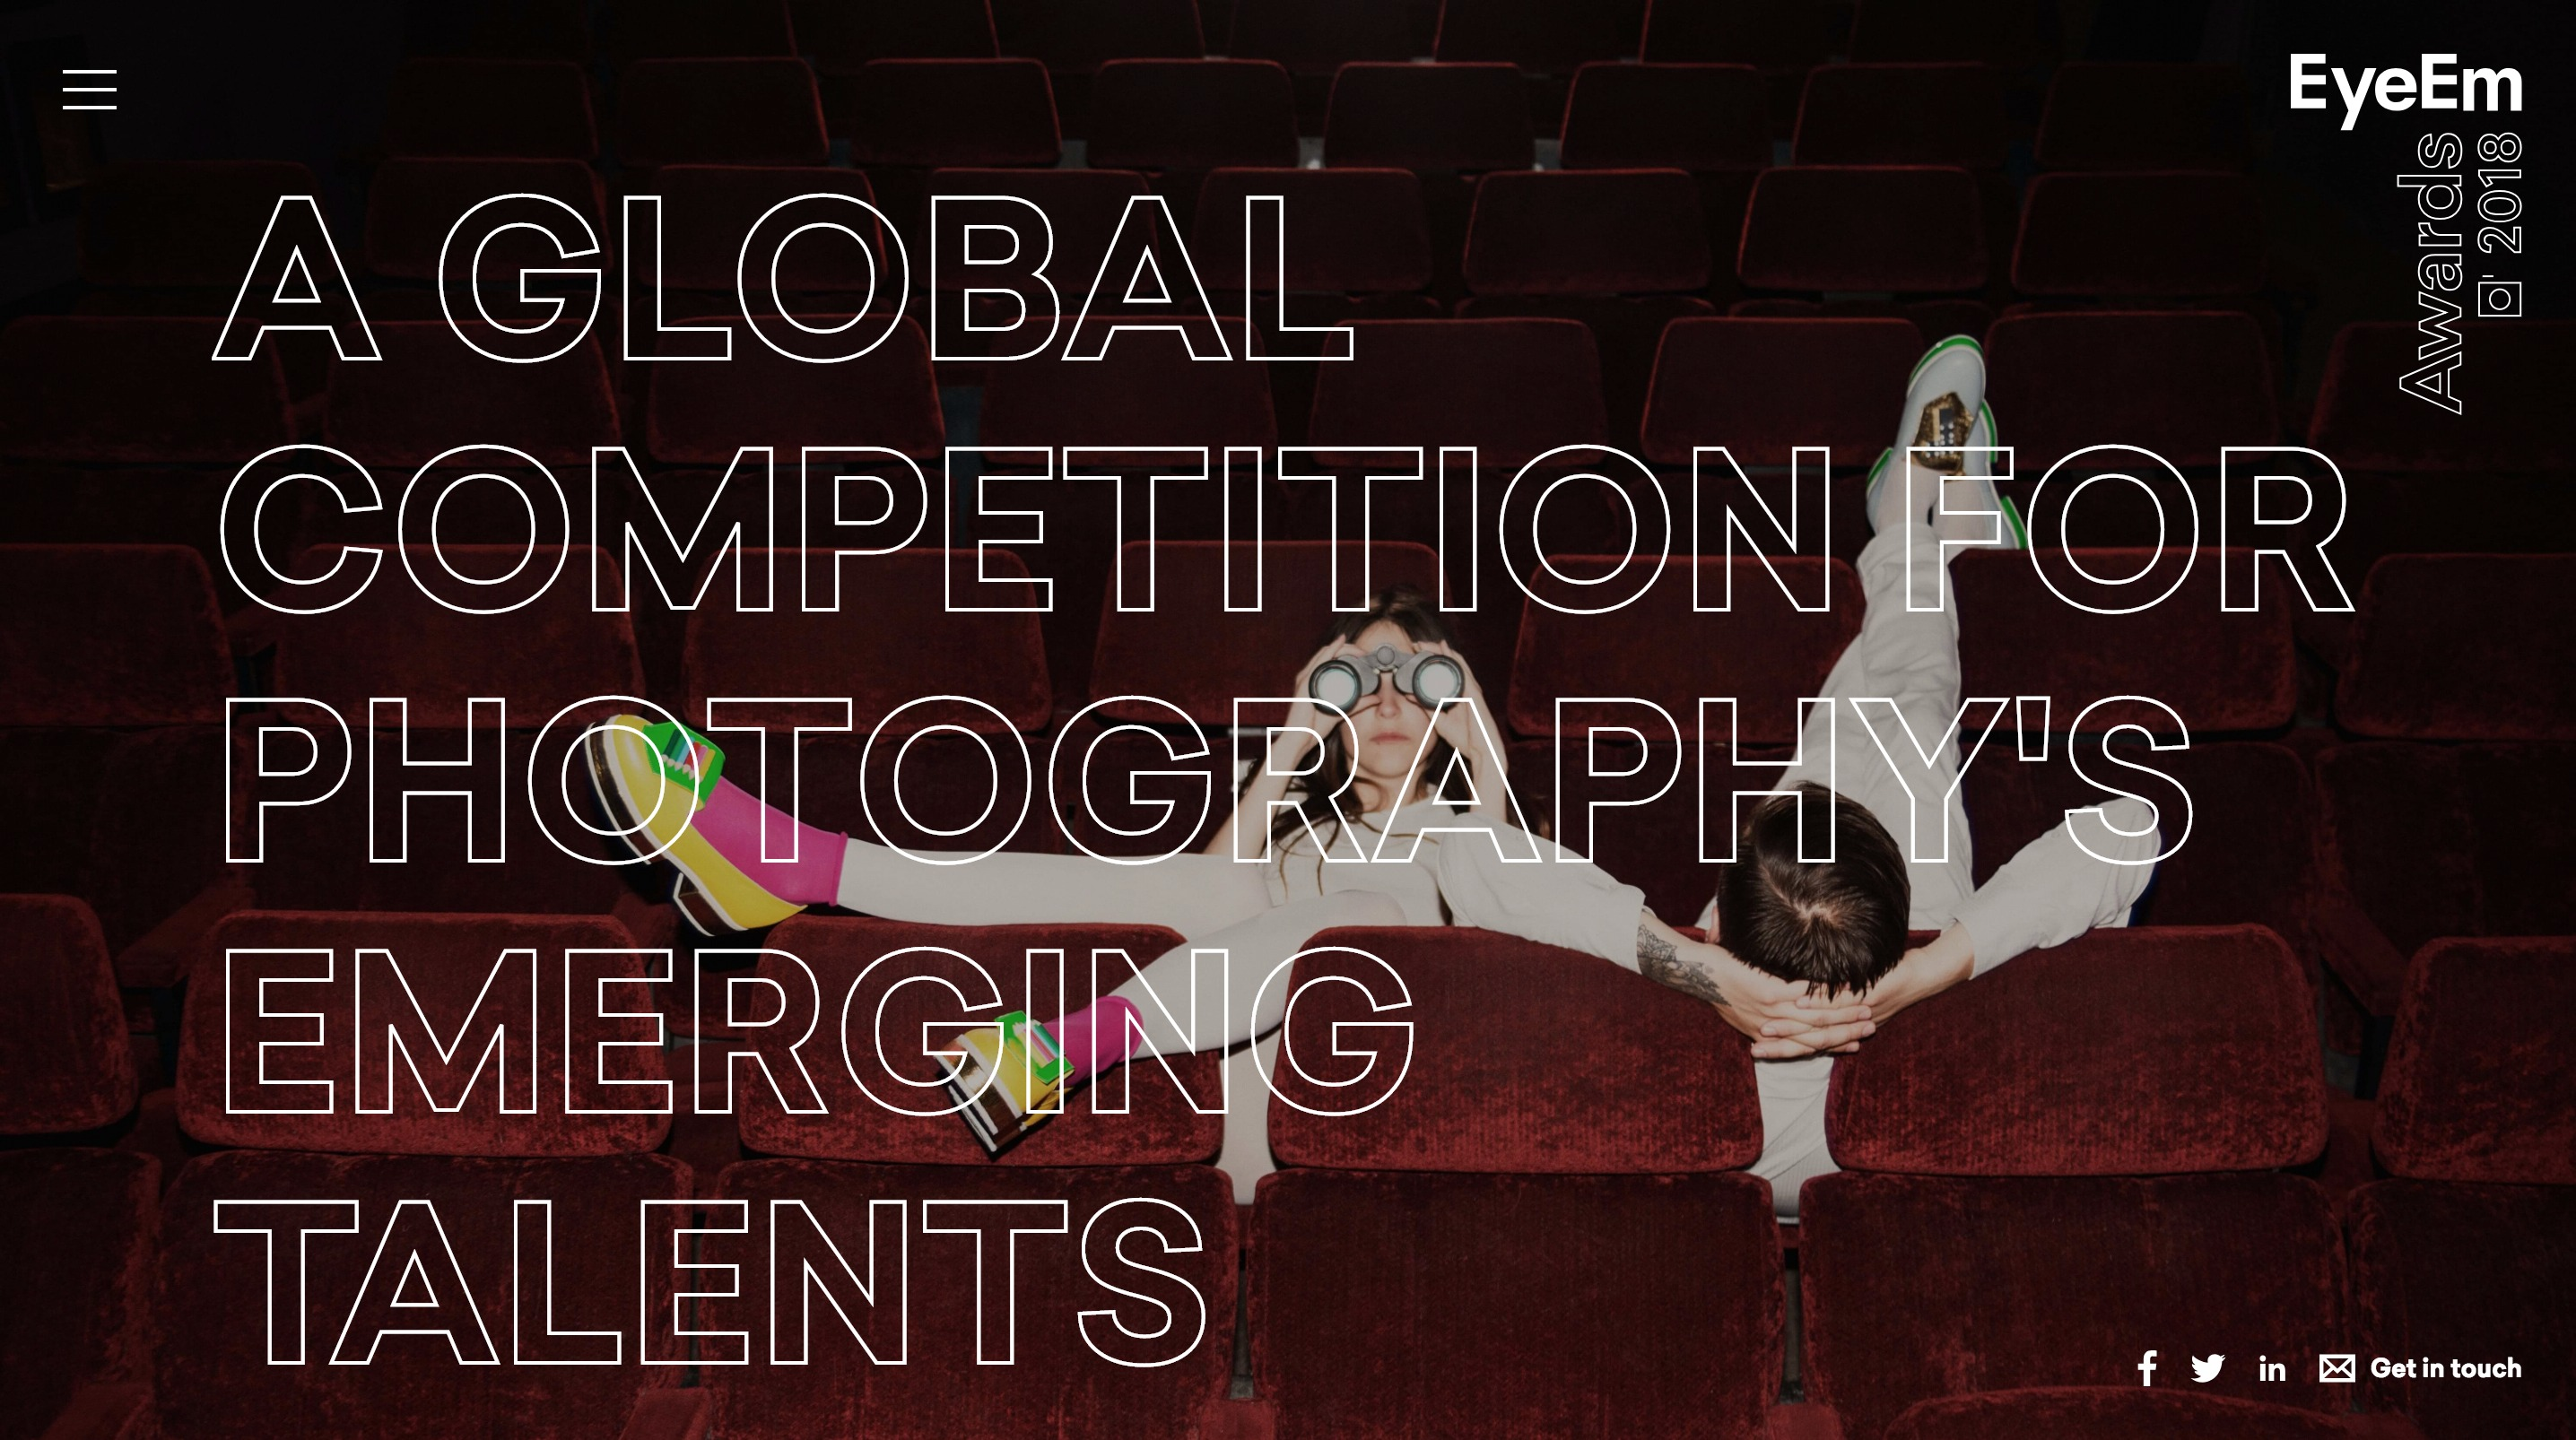 EyeEm Annual Photo Competition and Awards